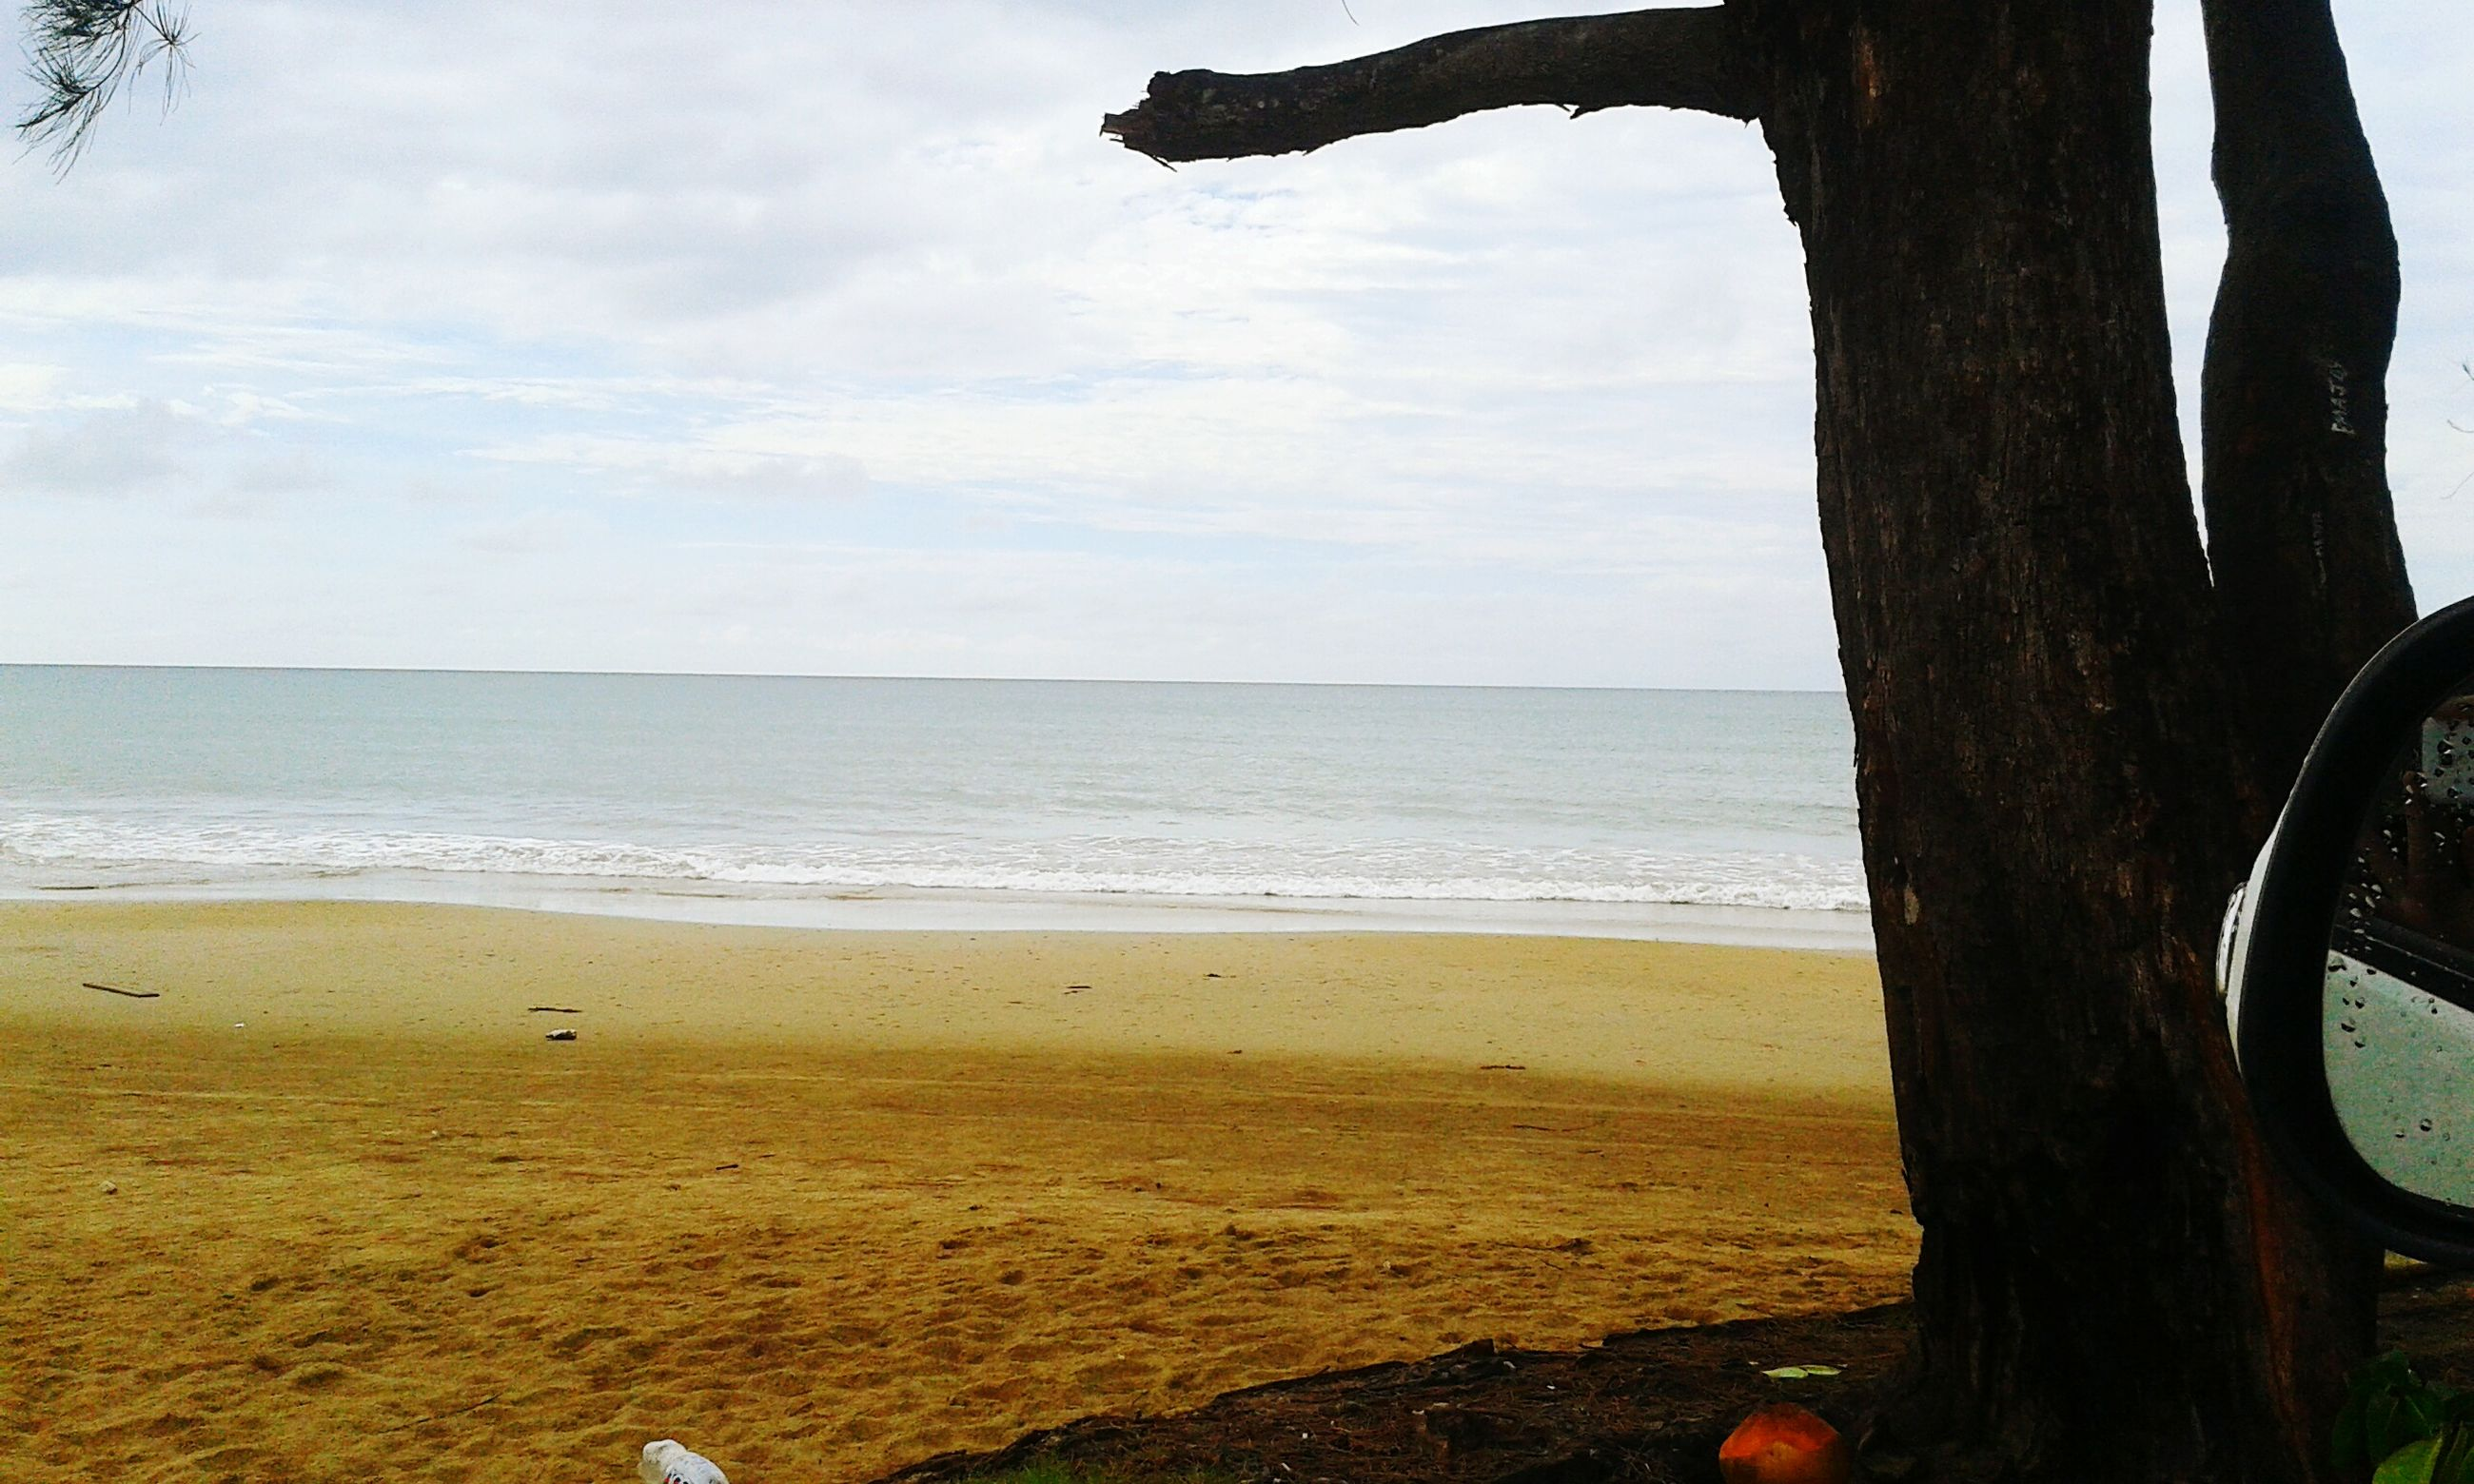 beach, sea, sky, shore, horizon over water, tranquility, water, tranquil scene, scenics, sand, beauty in nature, nature, tree, tree trunk, cloud - sky, idyllic, one person, cloud, coastline, outdoors